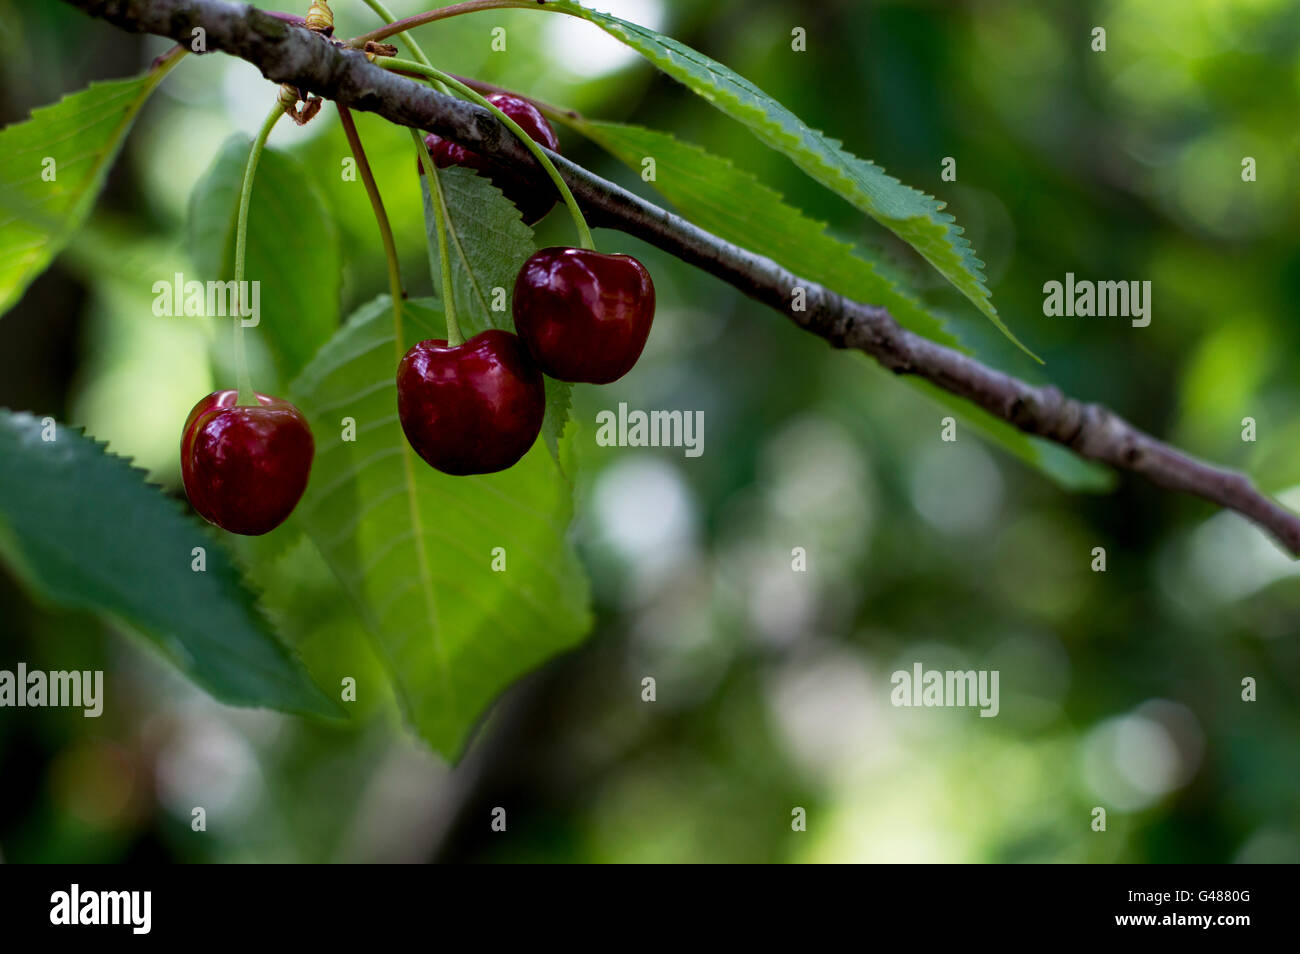 three ripe red sweet cherries on a branch, macro - Stock Image